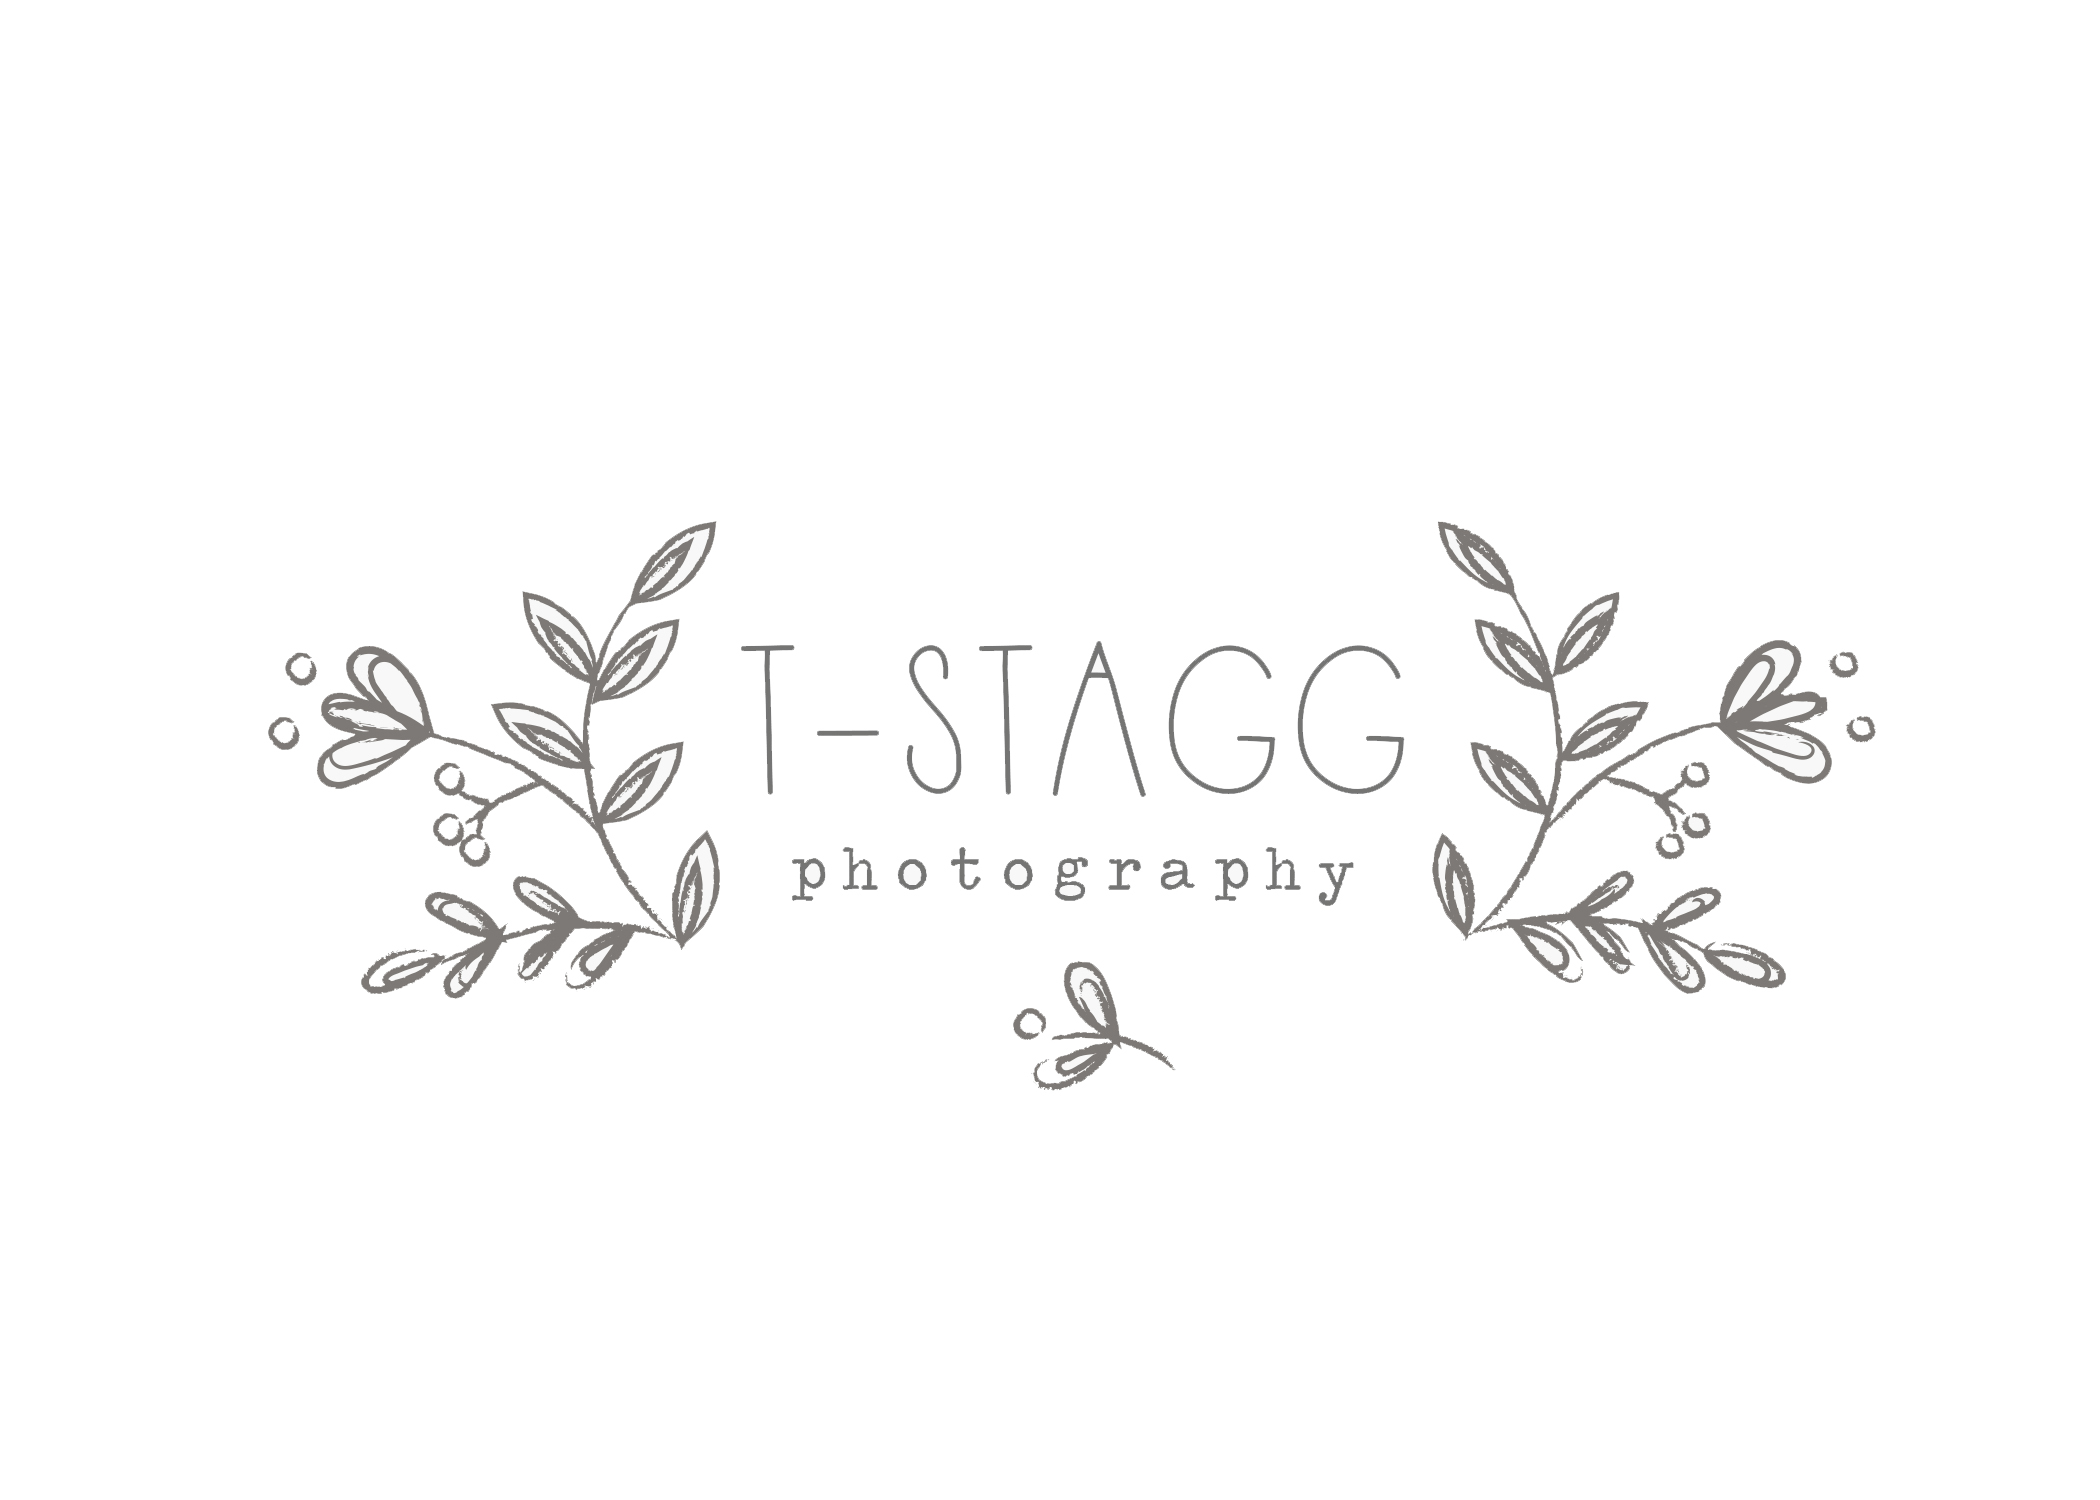 T-Stagg Photography